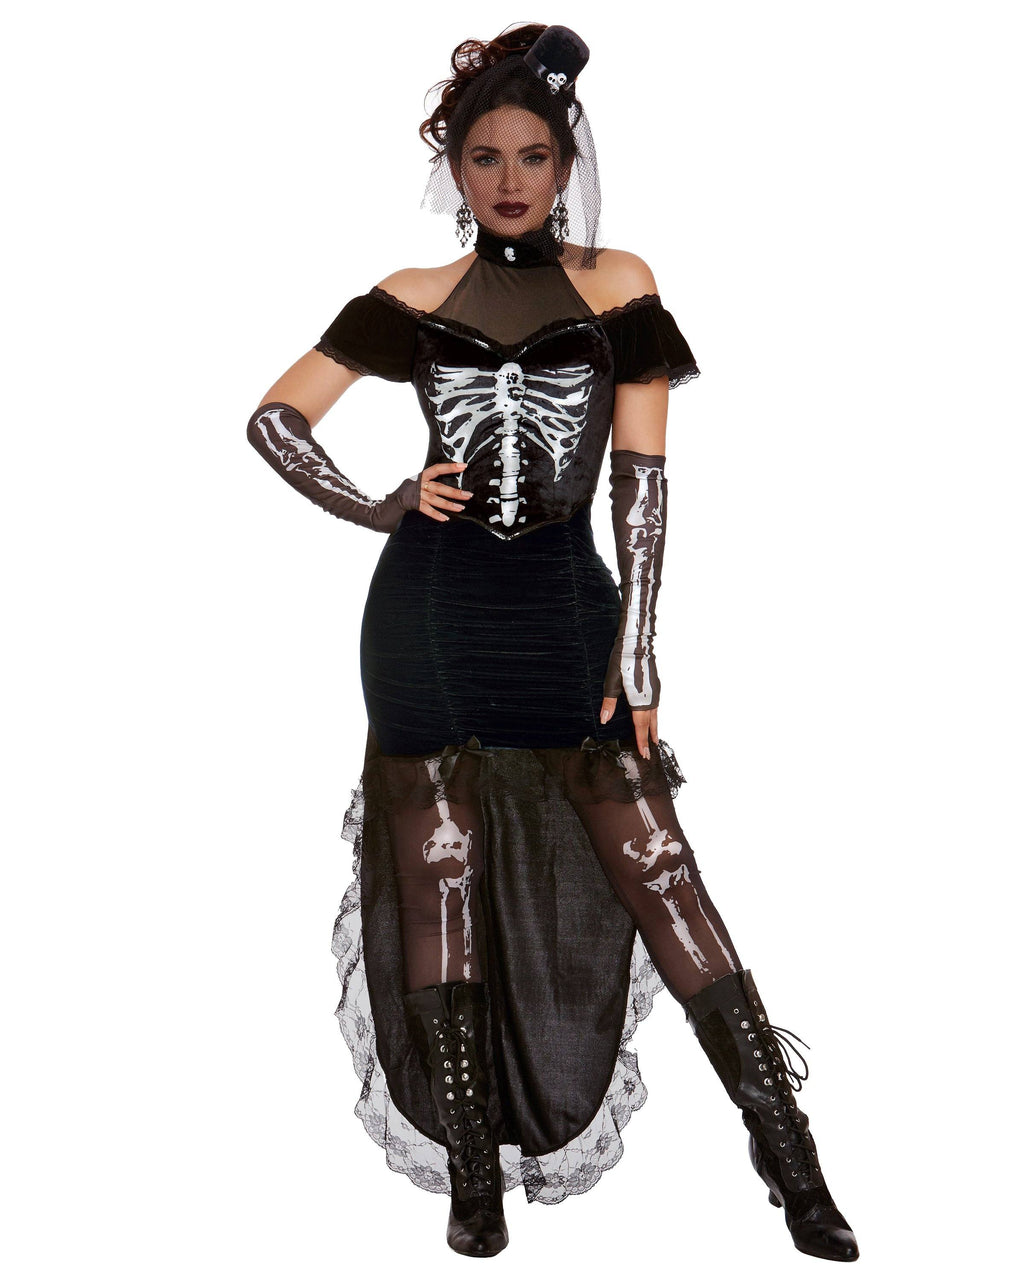 Madame Skeleton Women's Costume Dreamgirl Costume